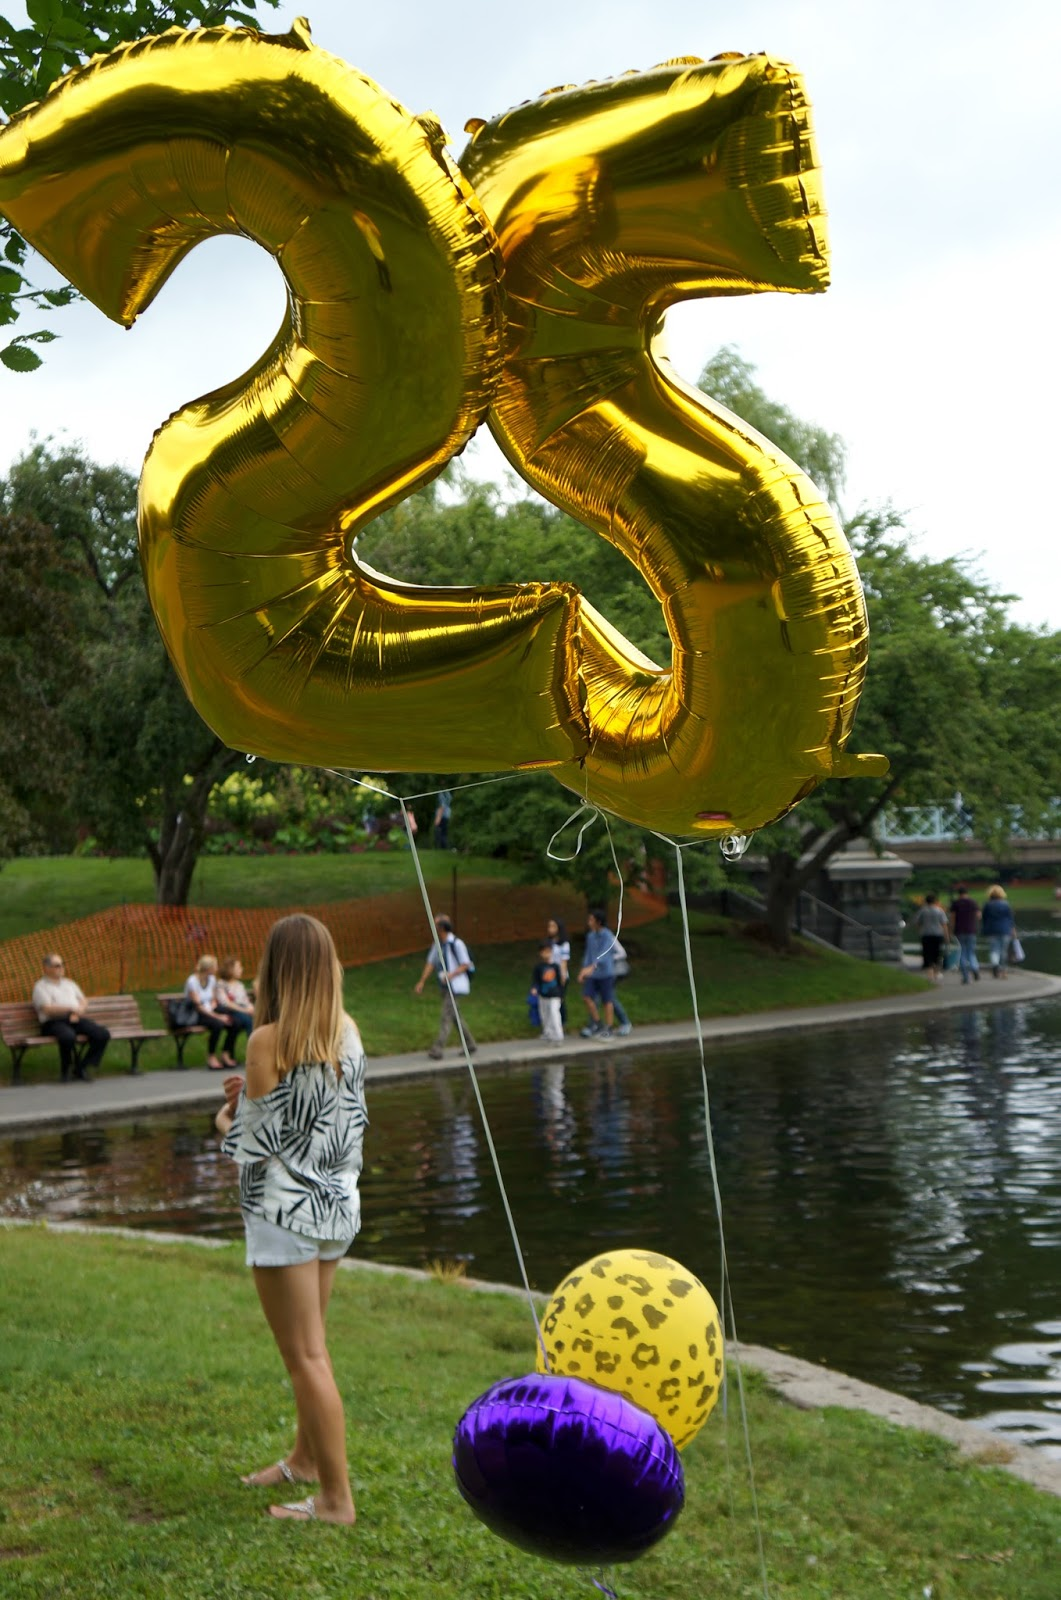 25th birthday photo shoot in the Boston park